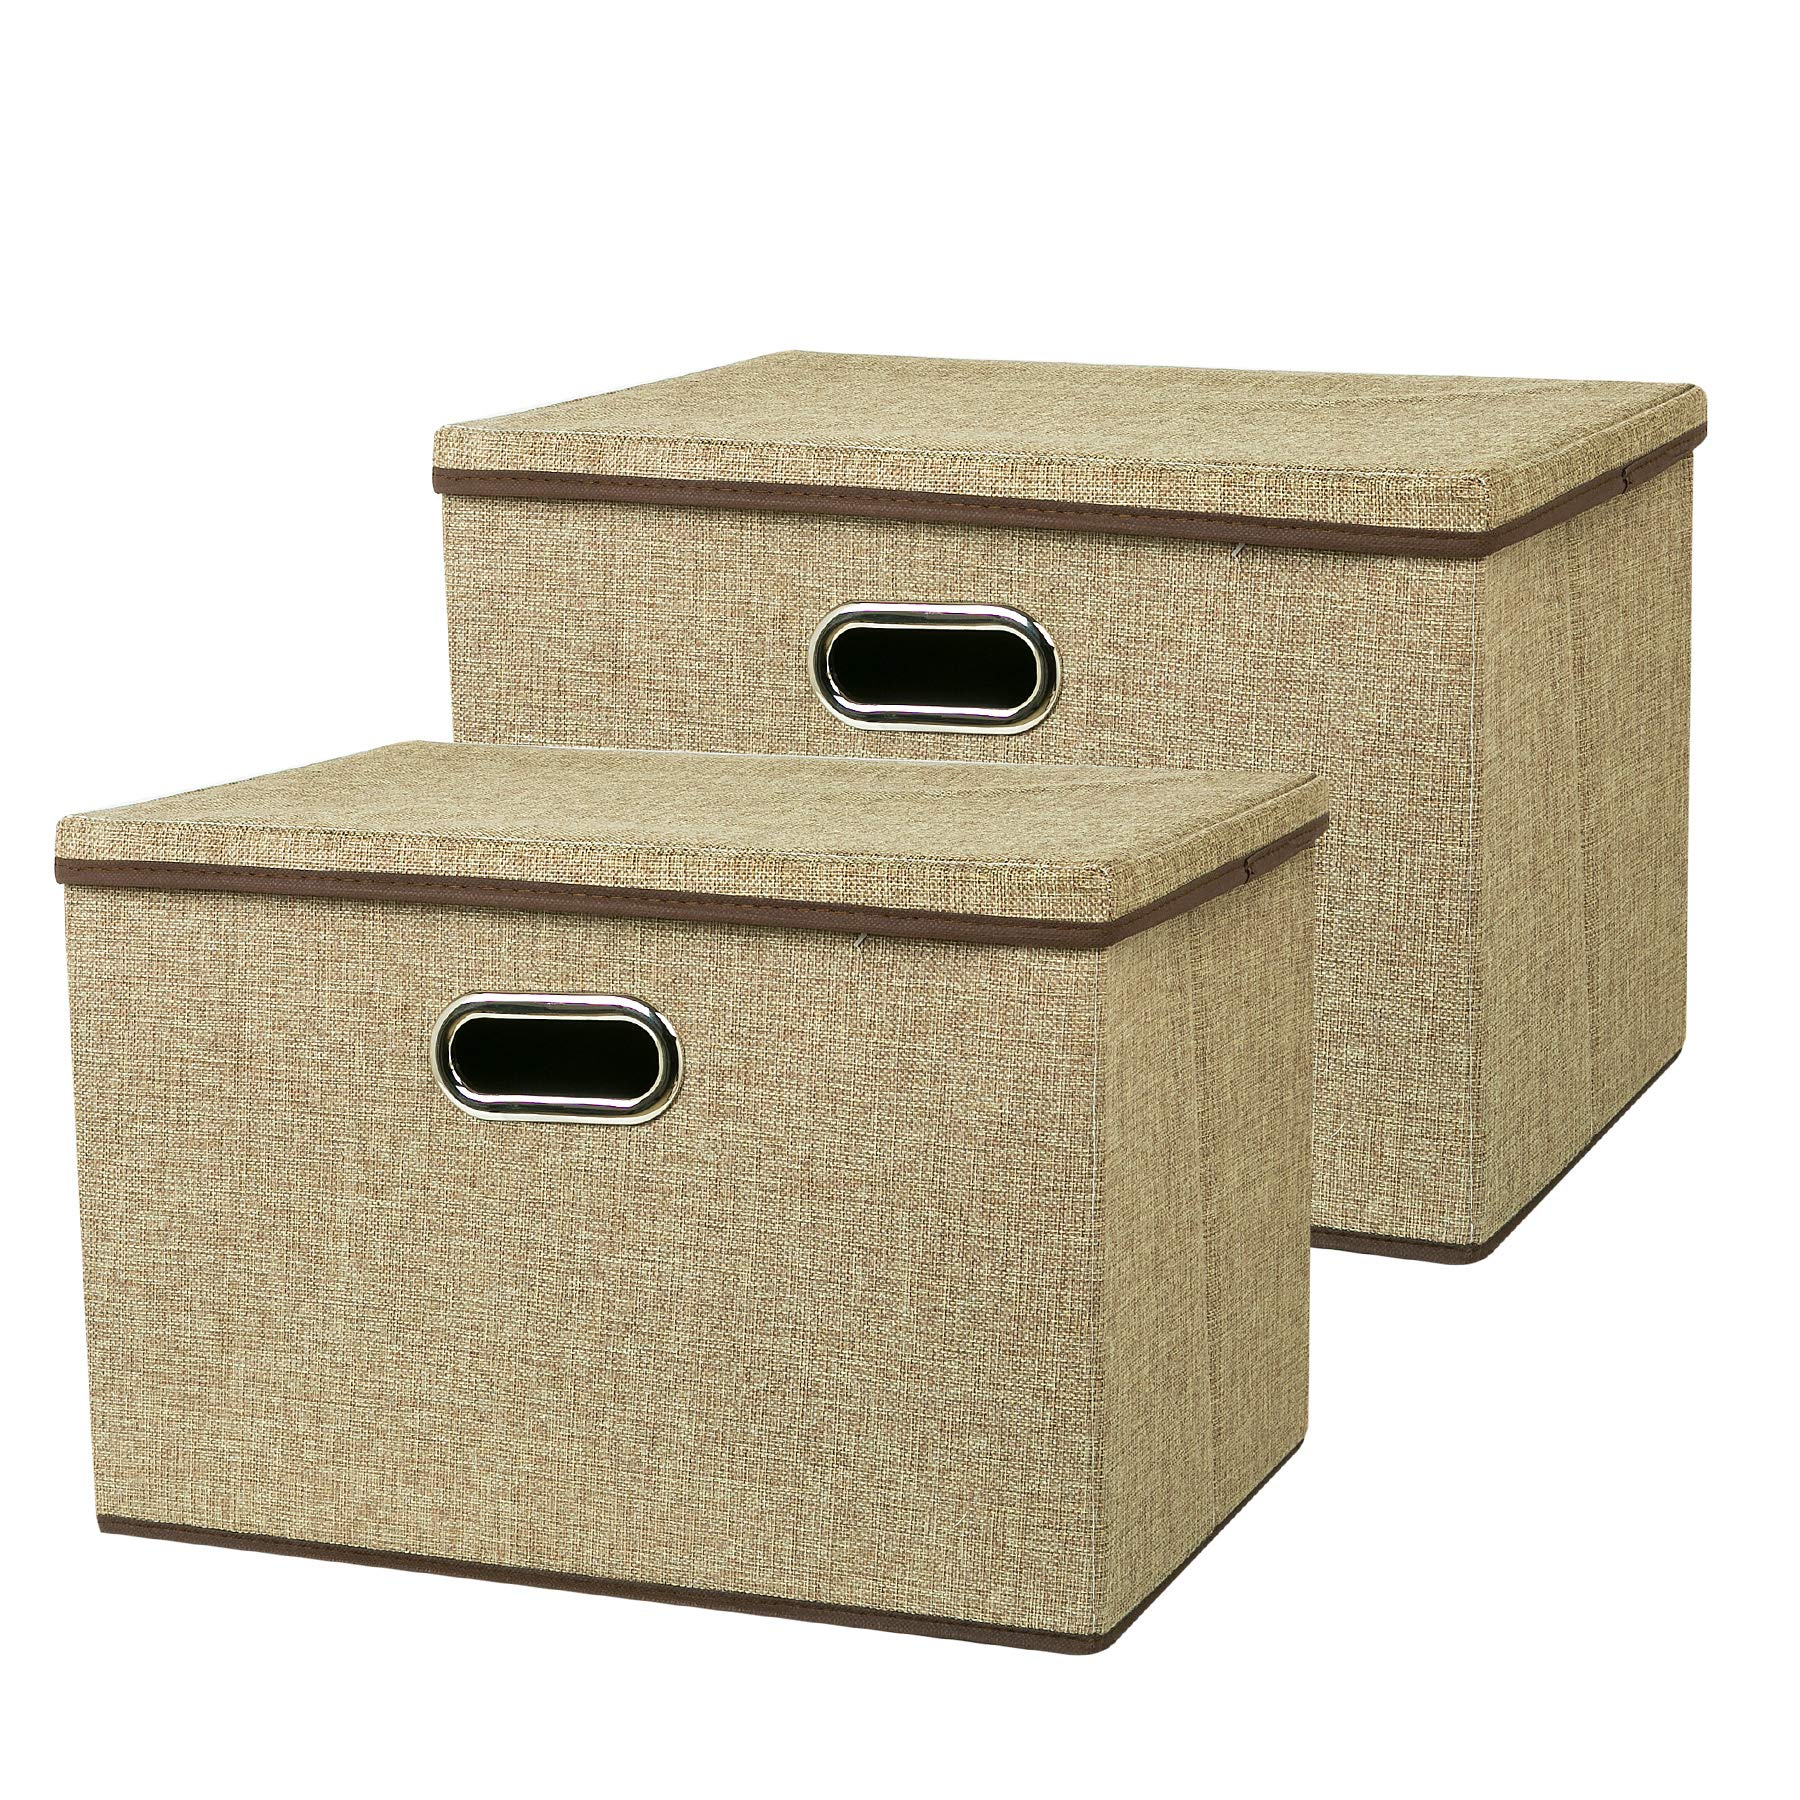 Zonyon Large Storage Box, 17.7'' Sturdy&Strong Collapsible Fabric Storage Bin Container Bakset Home Cube Organizer with Removable Lid for Bedroom,Closet,Shelves,Office,Khaki,2 Packs